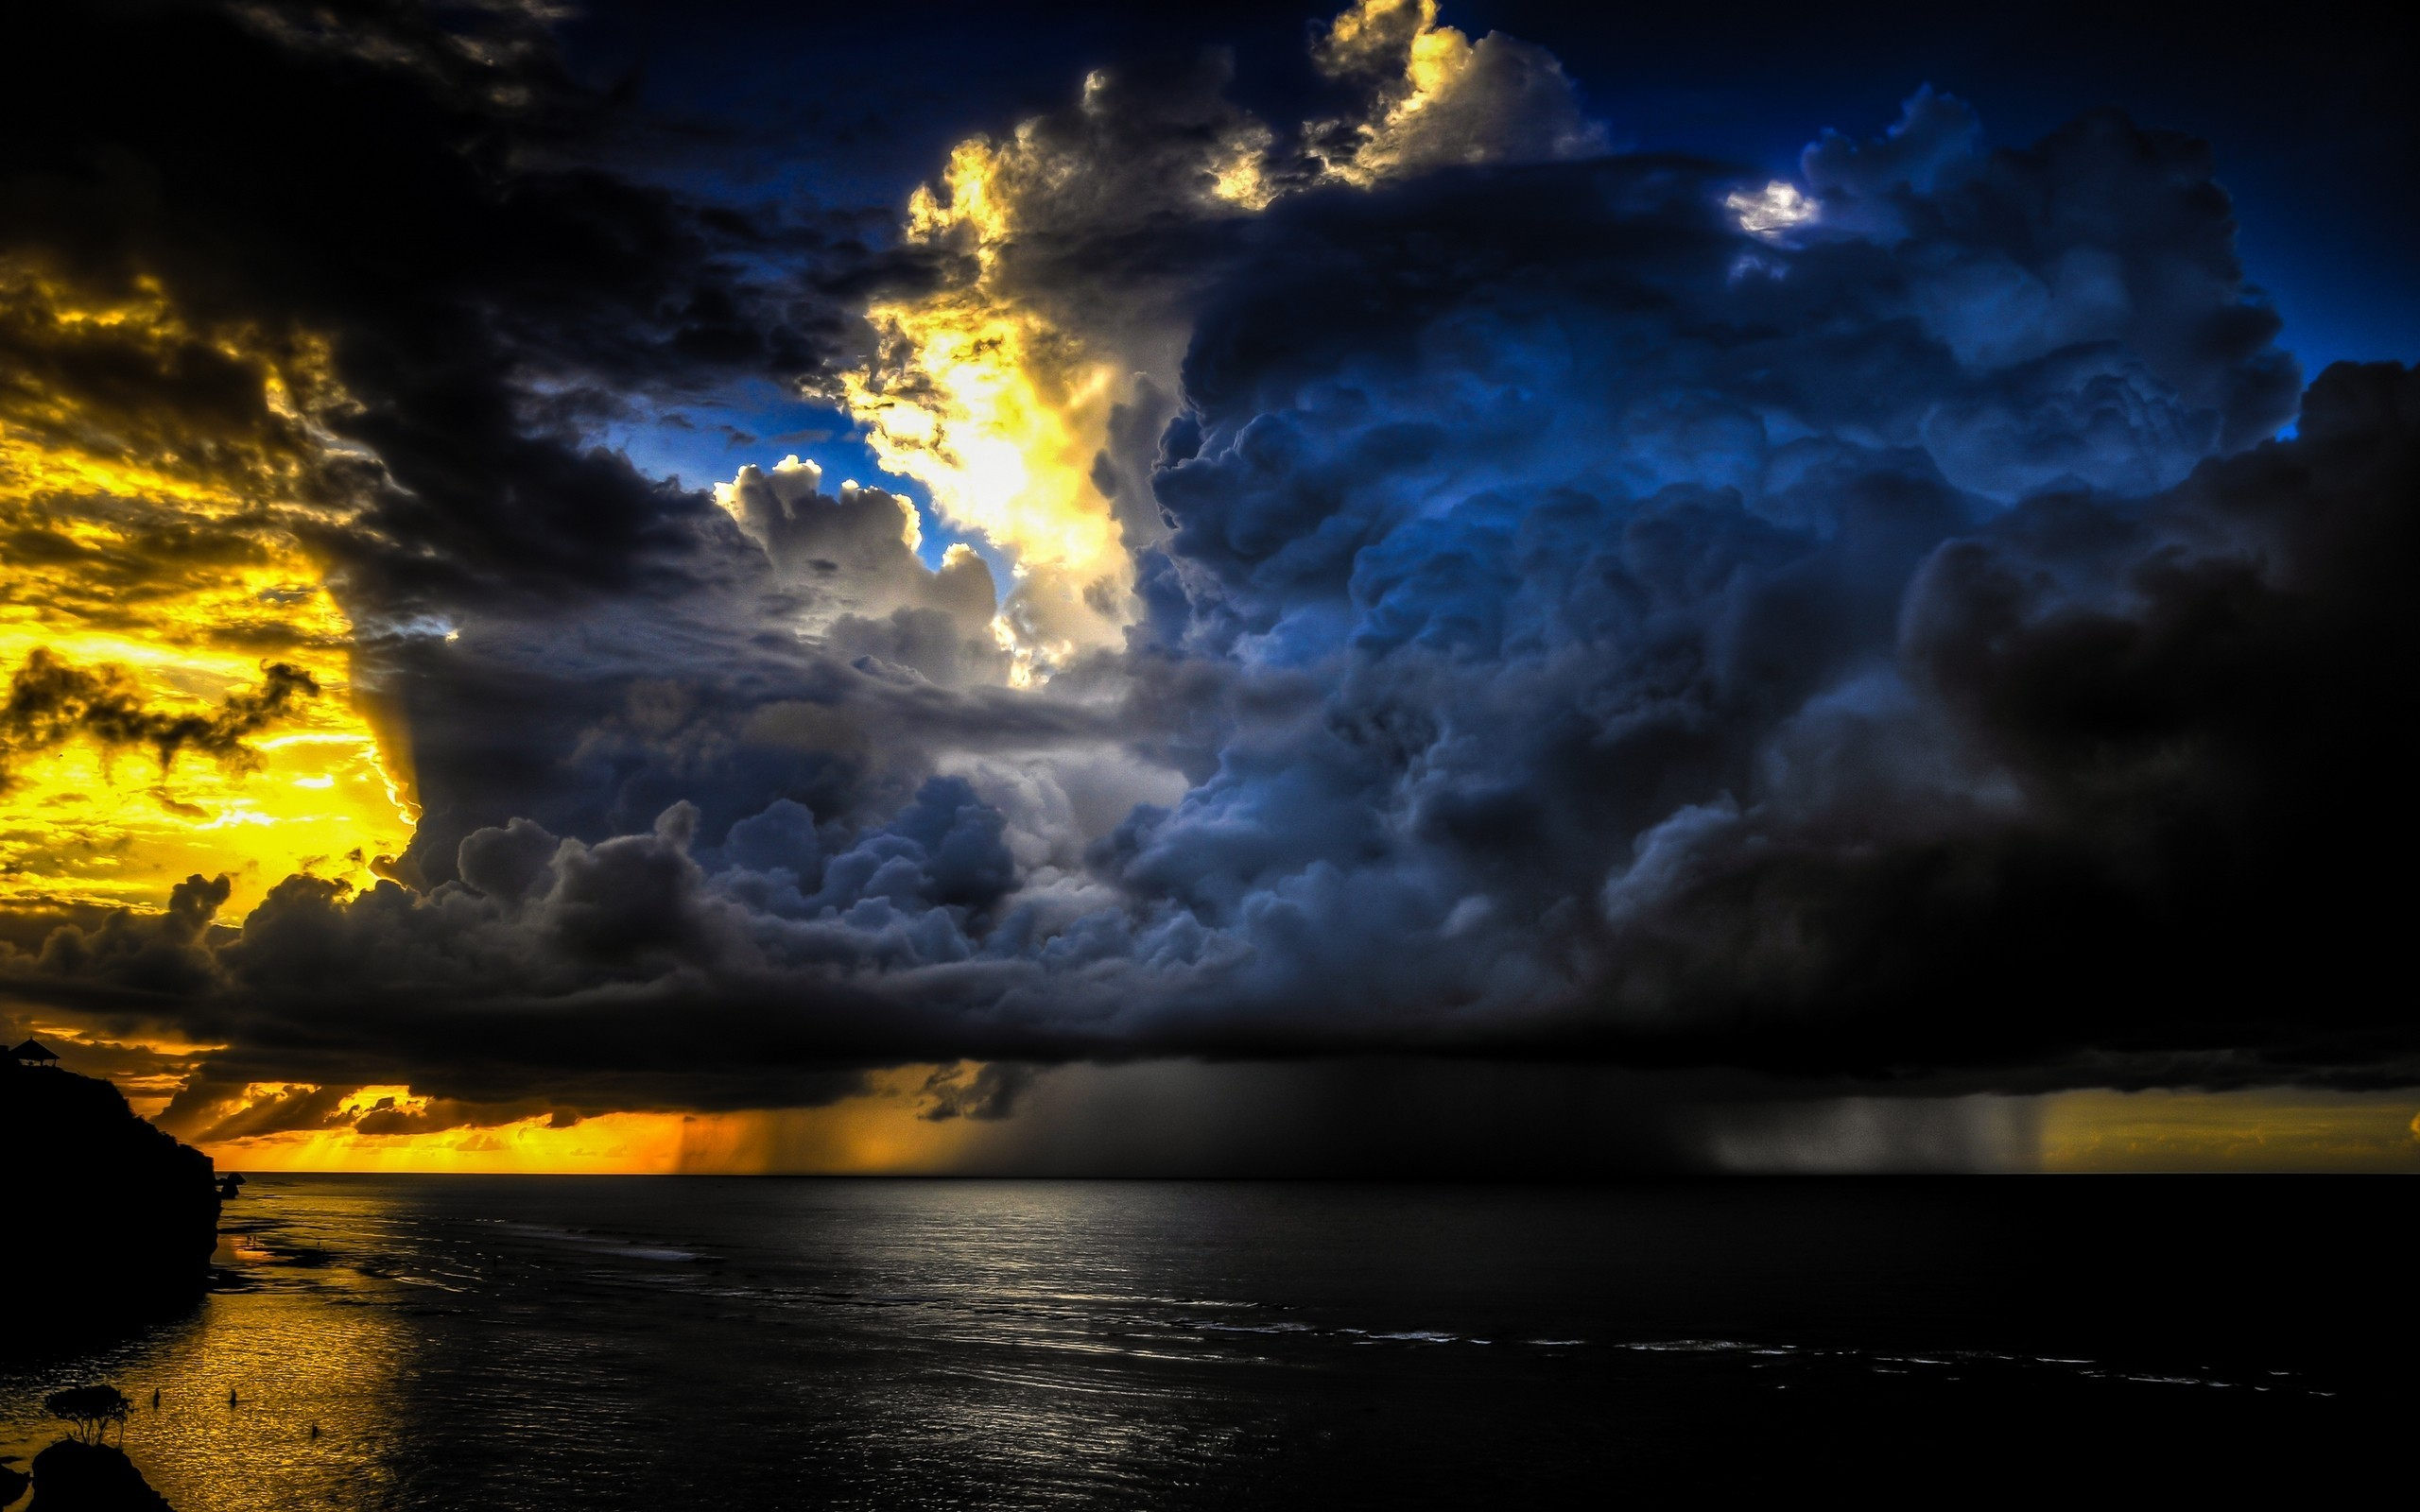 Res: 2560x1600, HD Wallpaper | Background Image ID:542175.  Earth Storm